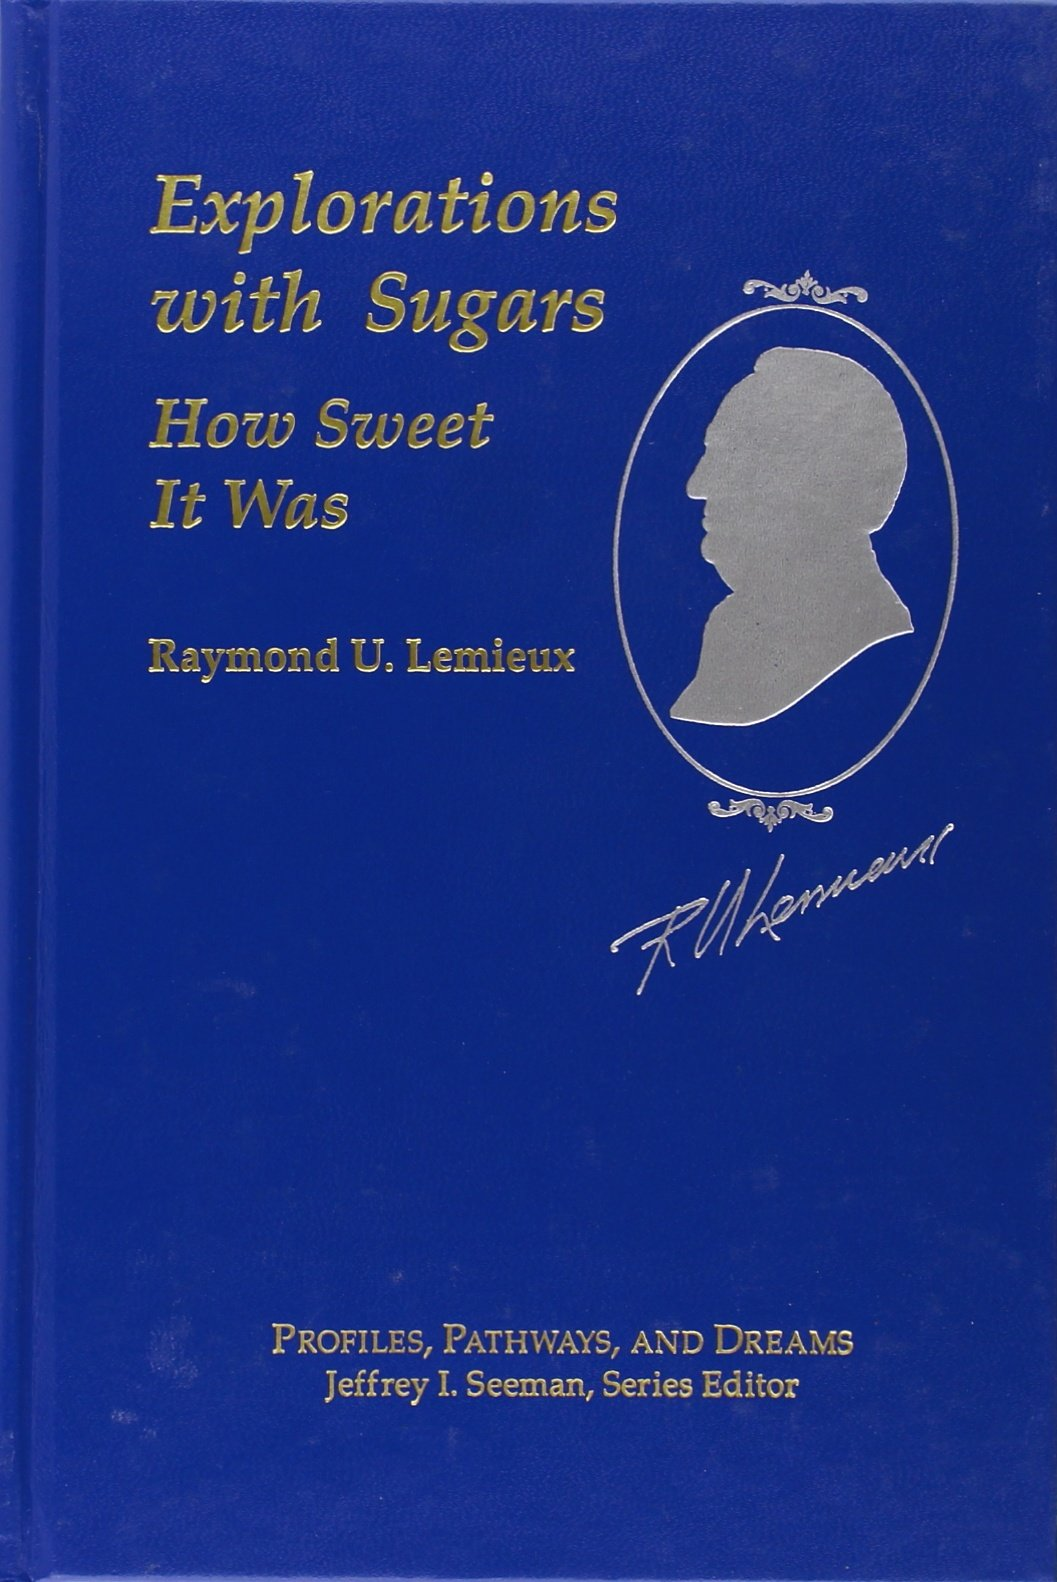 Raymond U. Lemieux: Explorations with Sugar: How Sweet It Was (ACS Profiles, Pathways and Dreams) by Brand: American Chemical Society